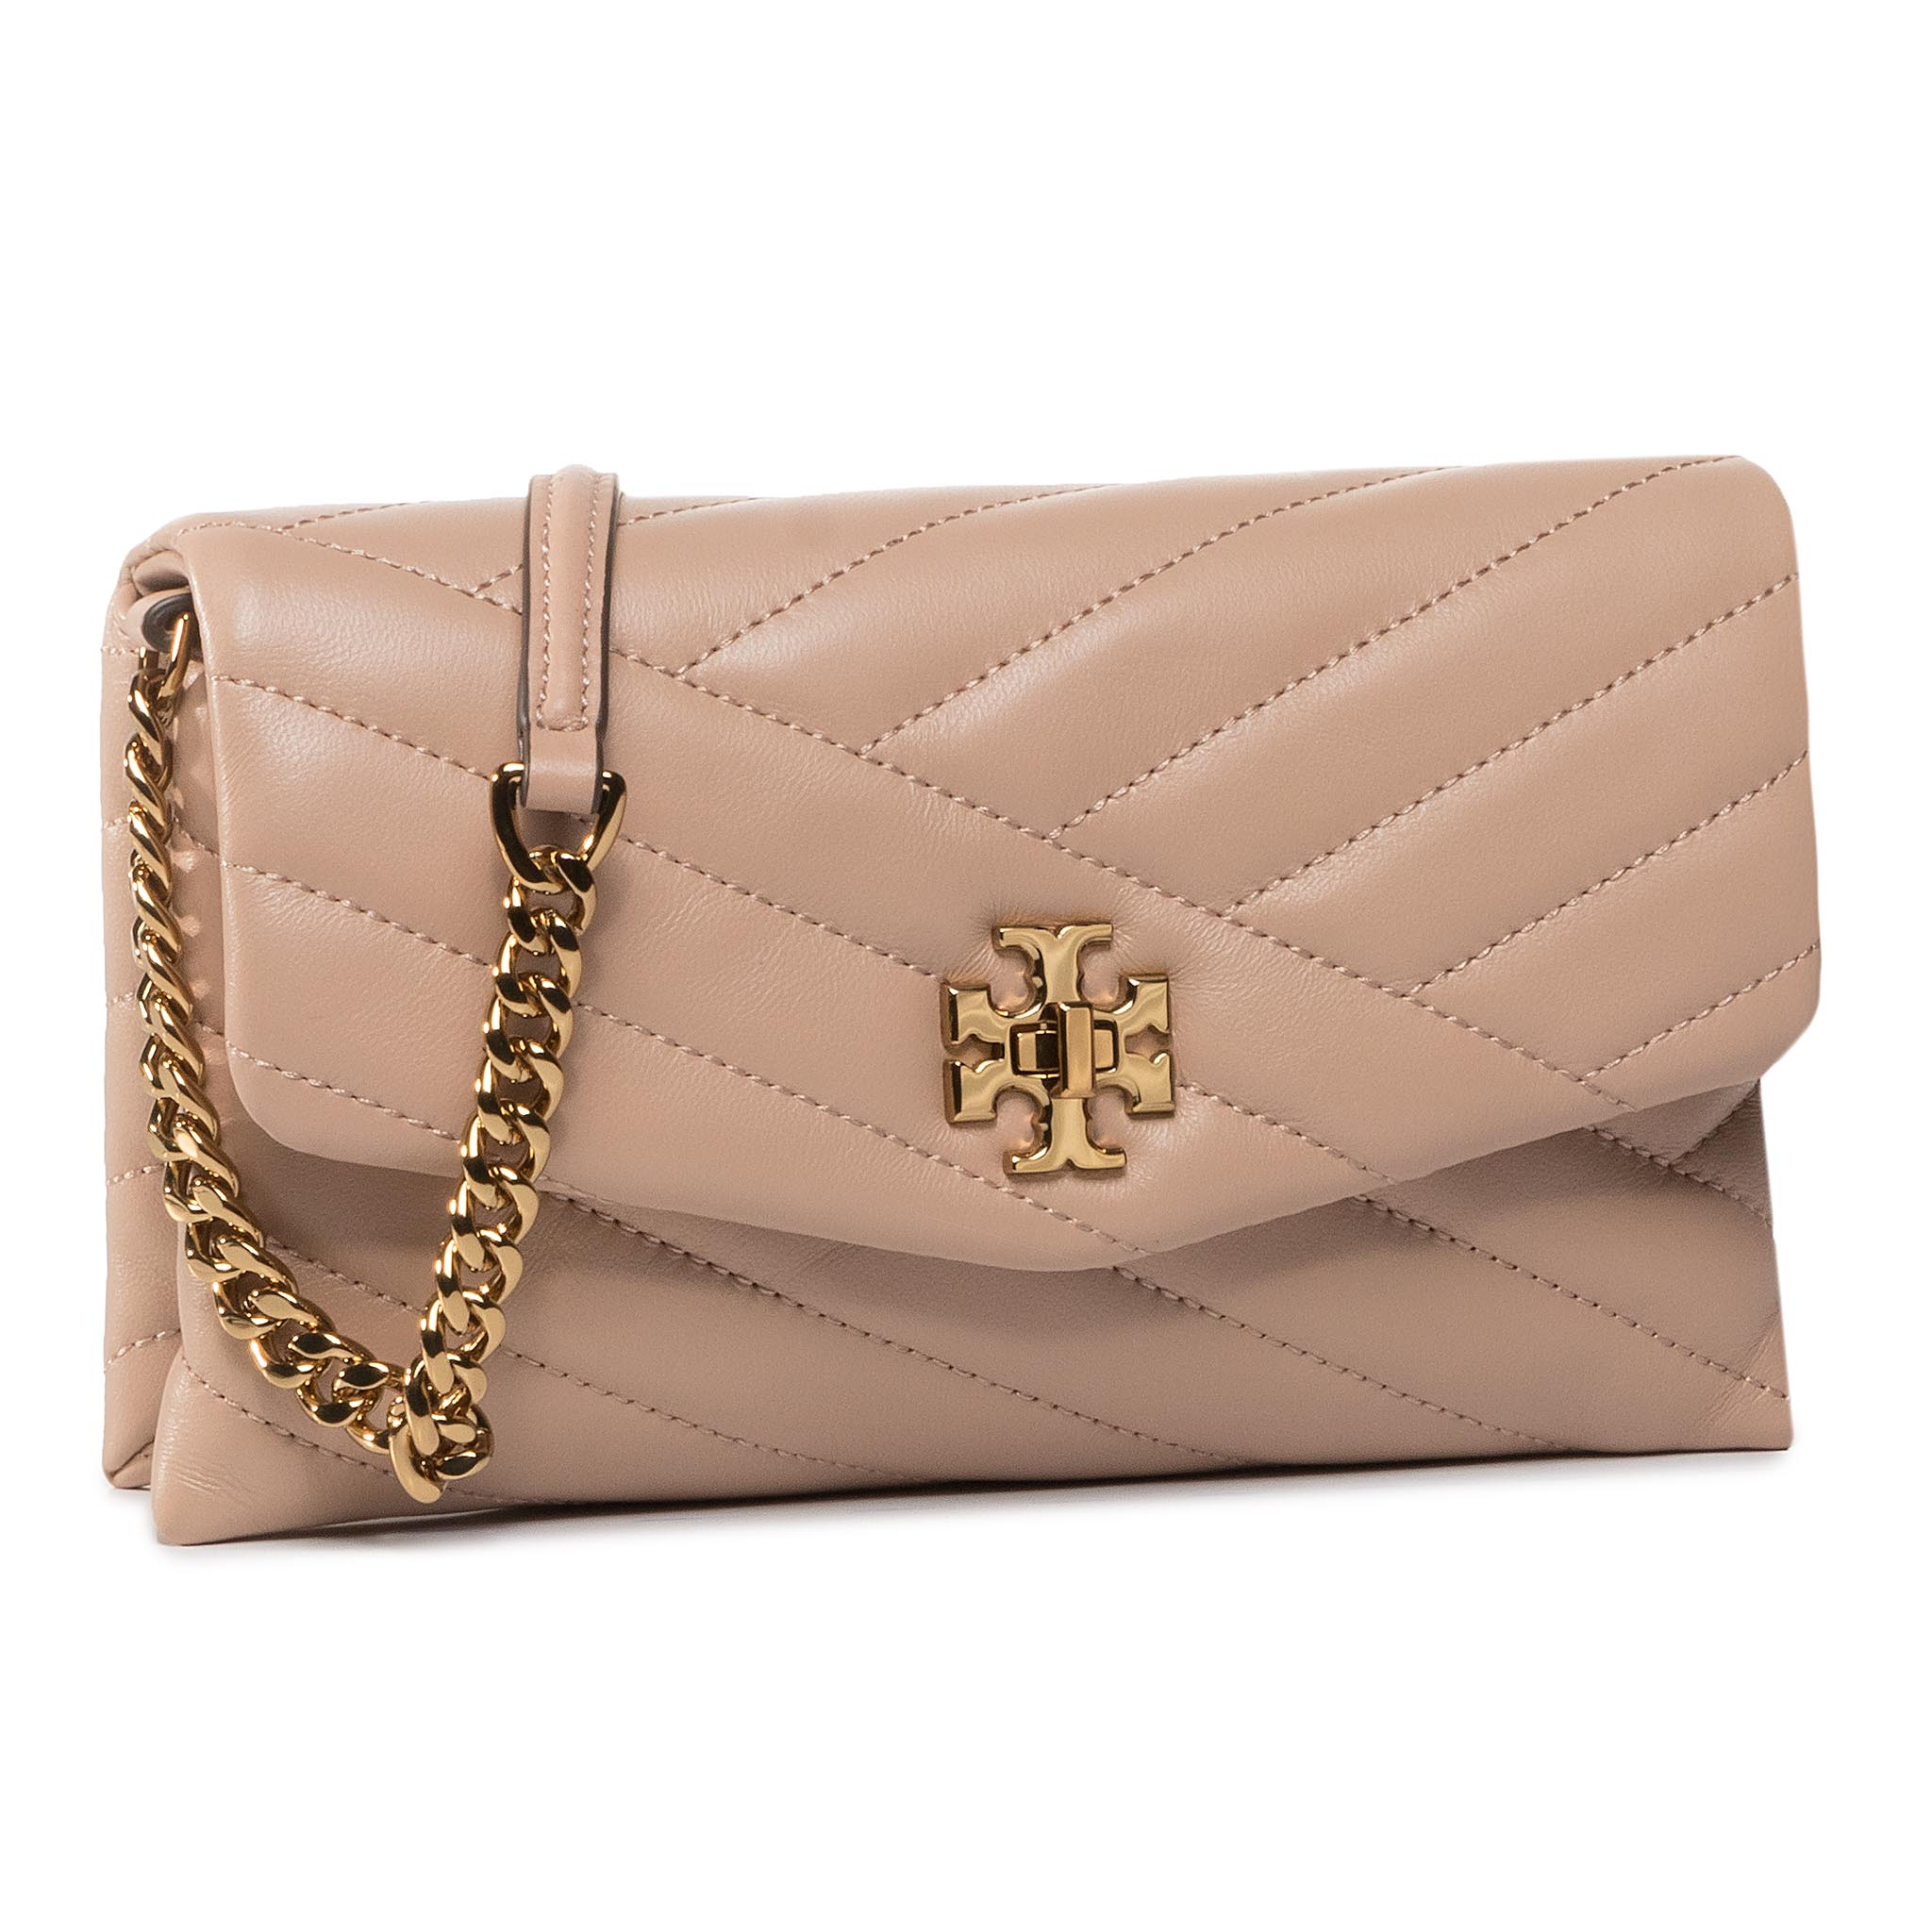 Geantă TORY BURCH - Kira Chevron Chain Wallet 64068 Devon Sand 288